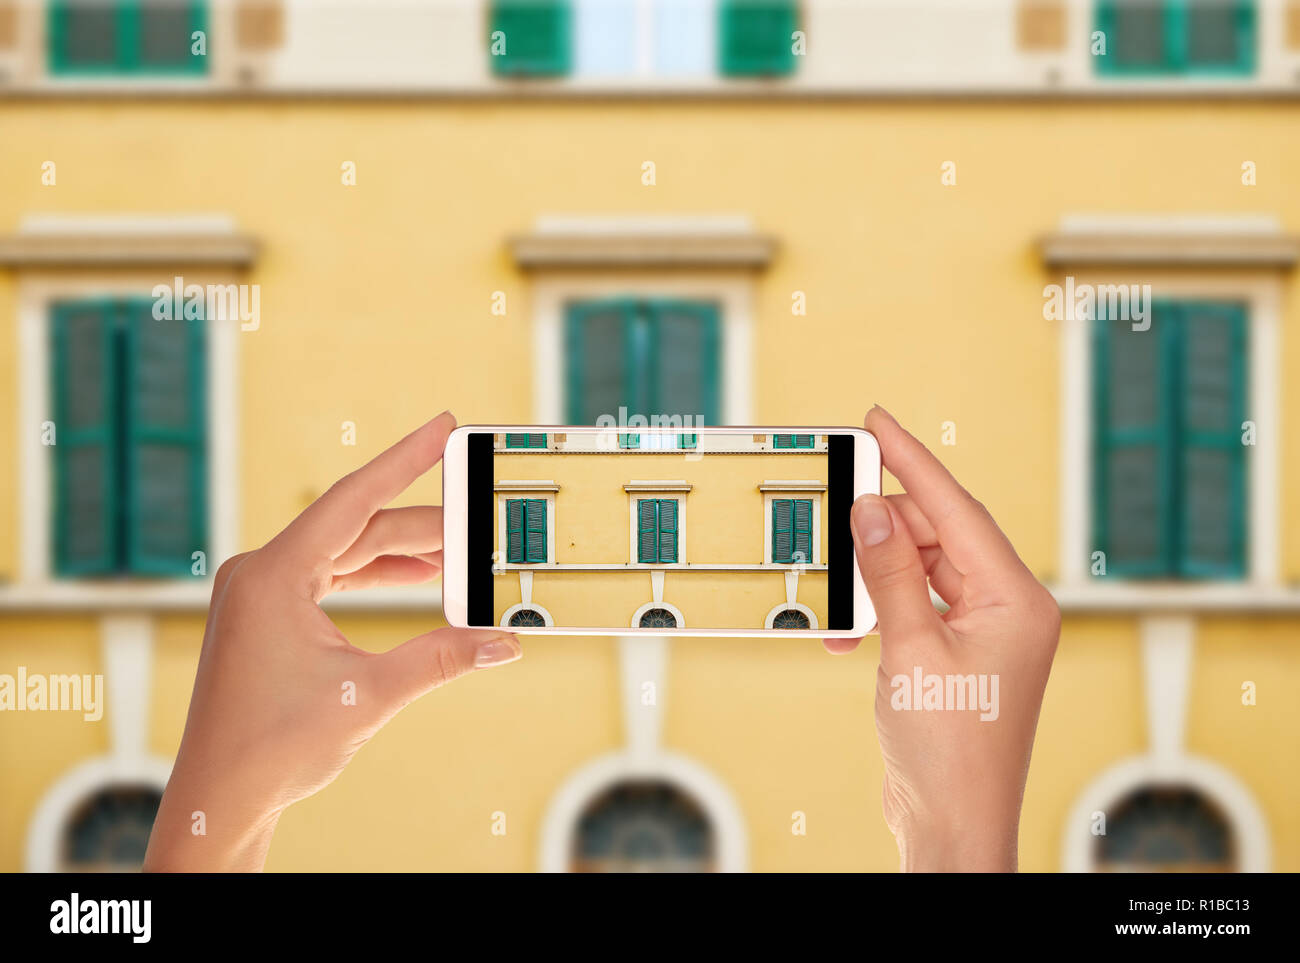 A tourist is taking a photo of pattern from windows of the facade of one of the buildings in Rome, Italy on a mobile phone - Stock Image